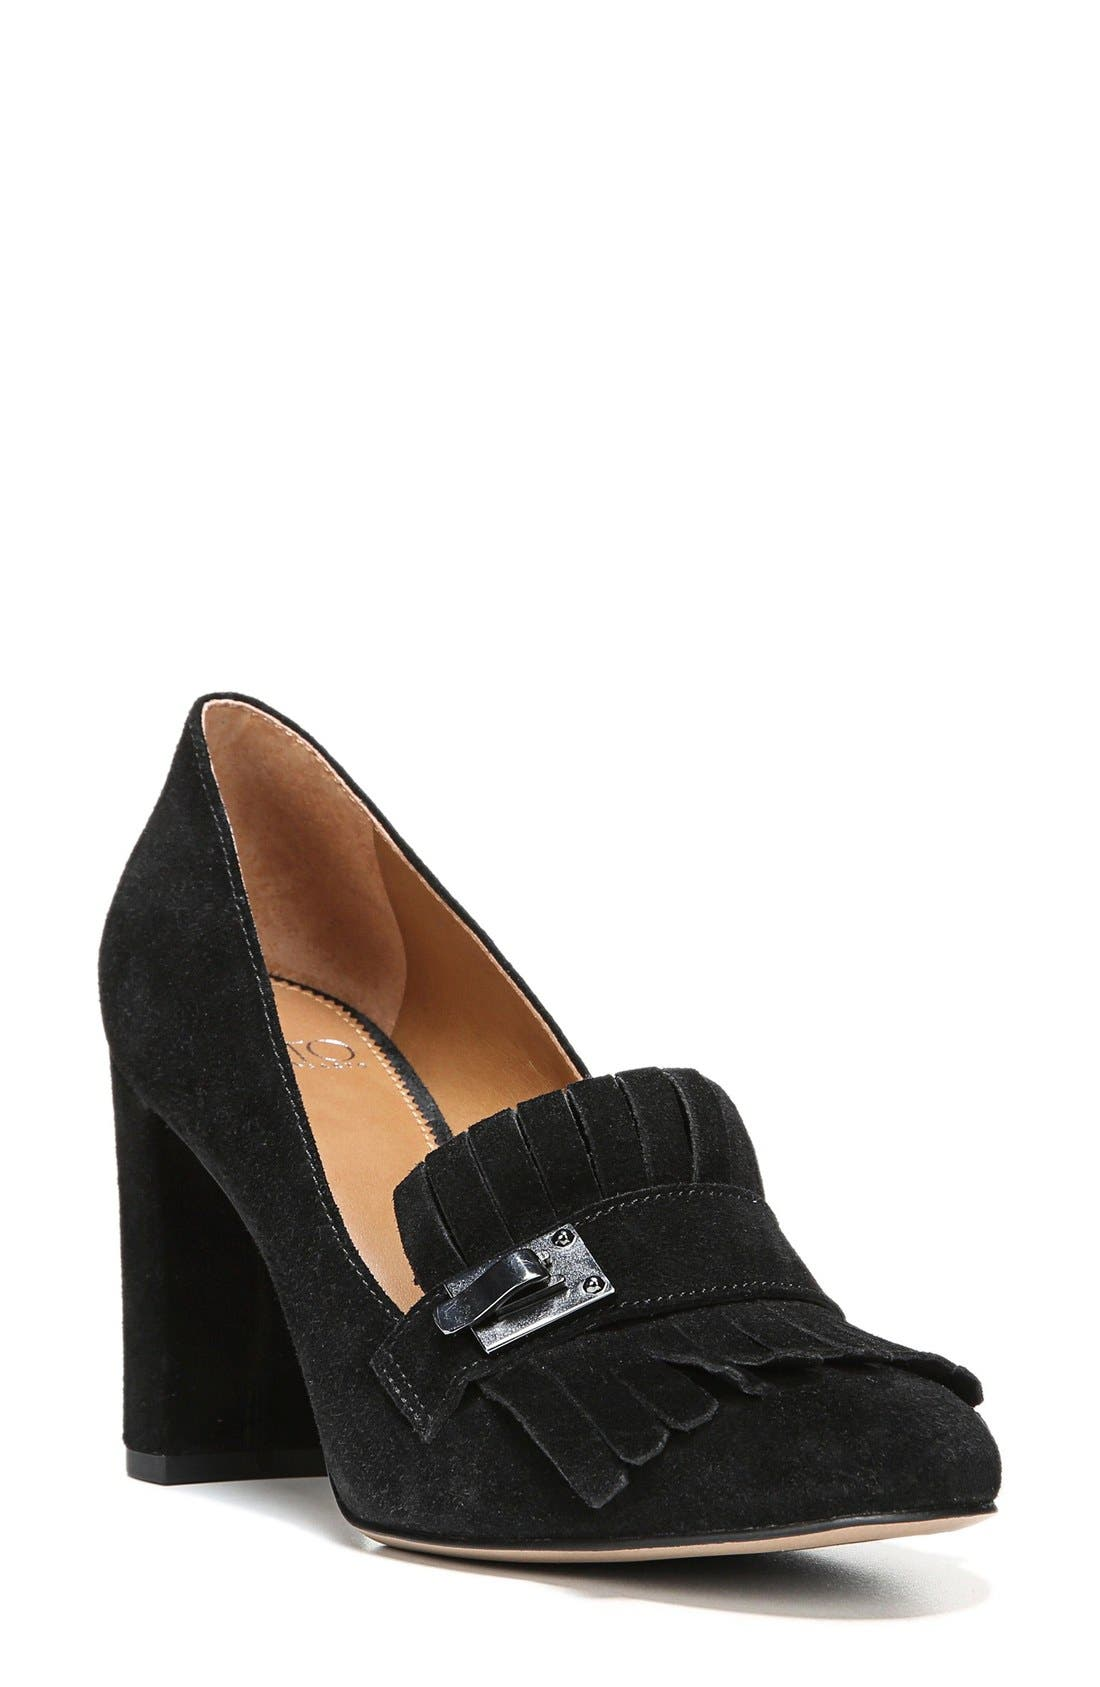 'Ainsley' Loafer Pump,                         Main,                         color, 001